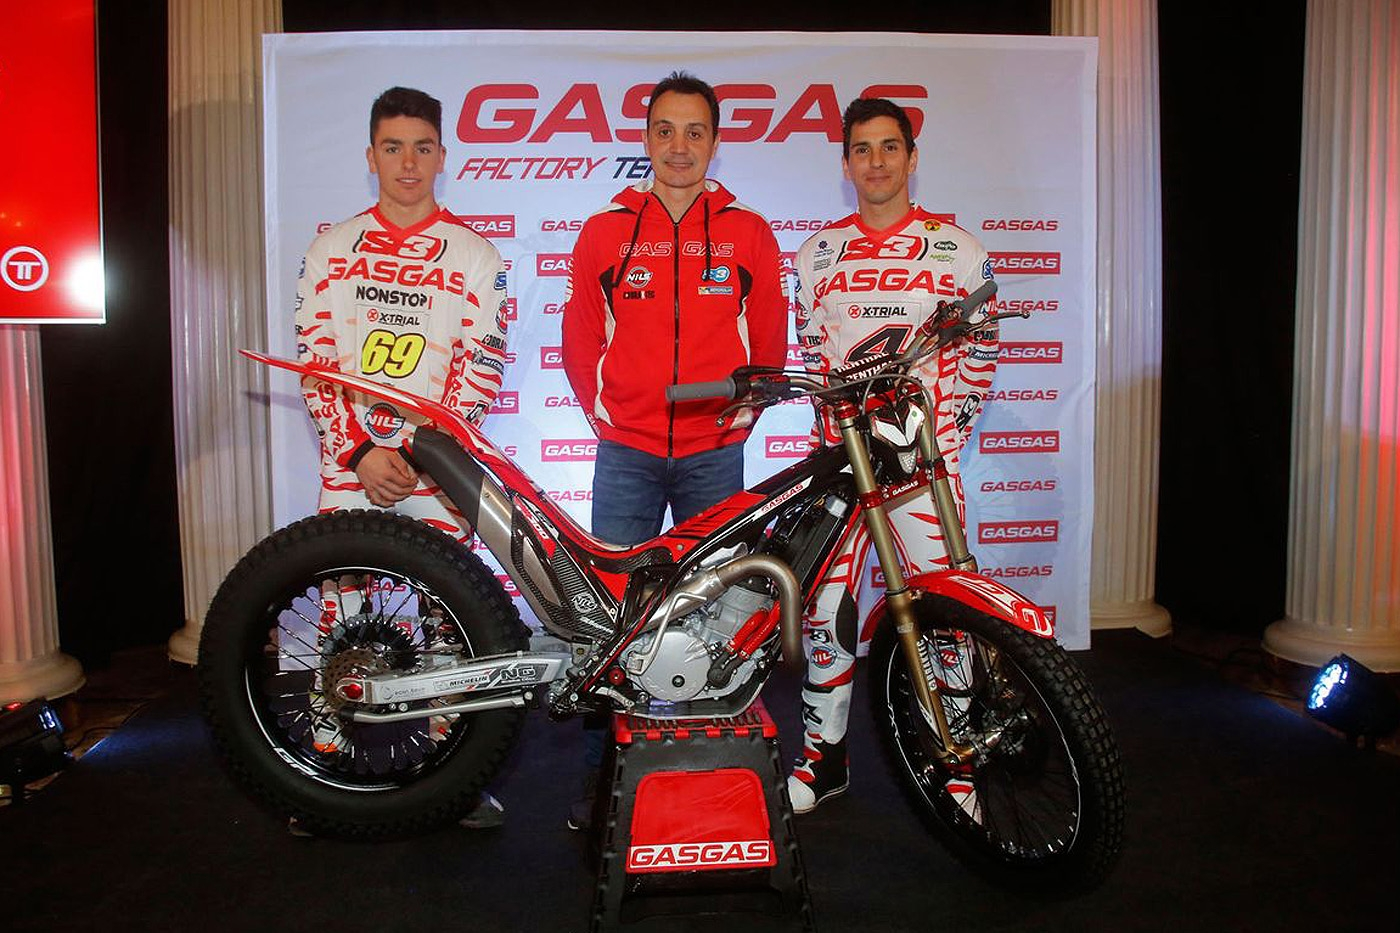 Gas Gas strengthens with Fajardo and Busto